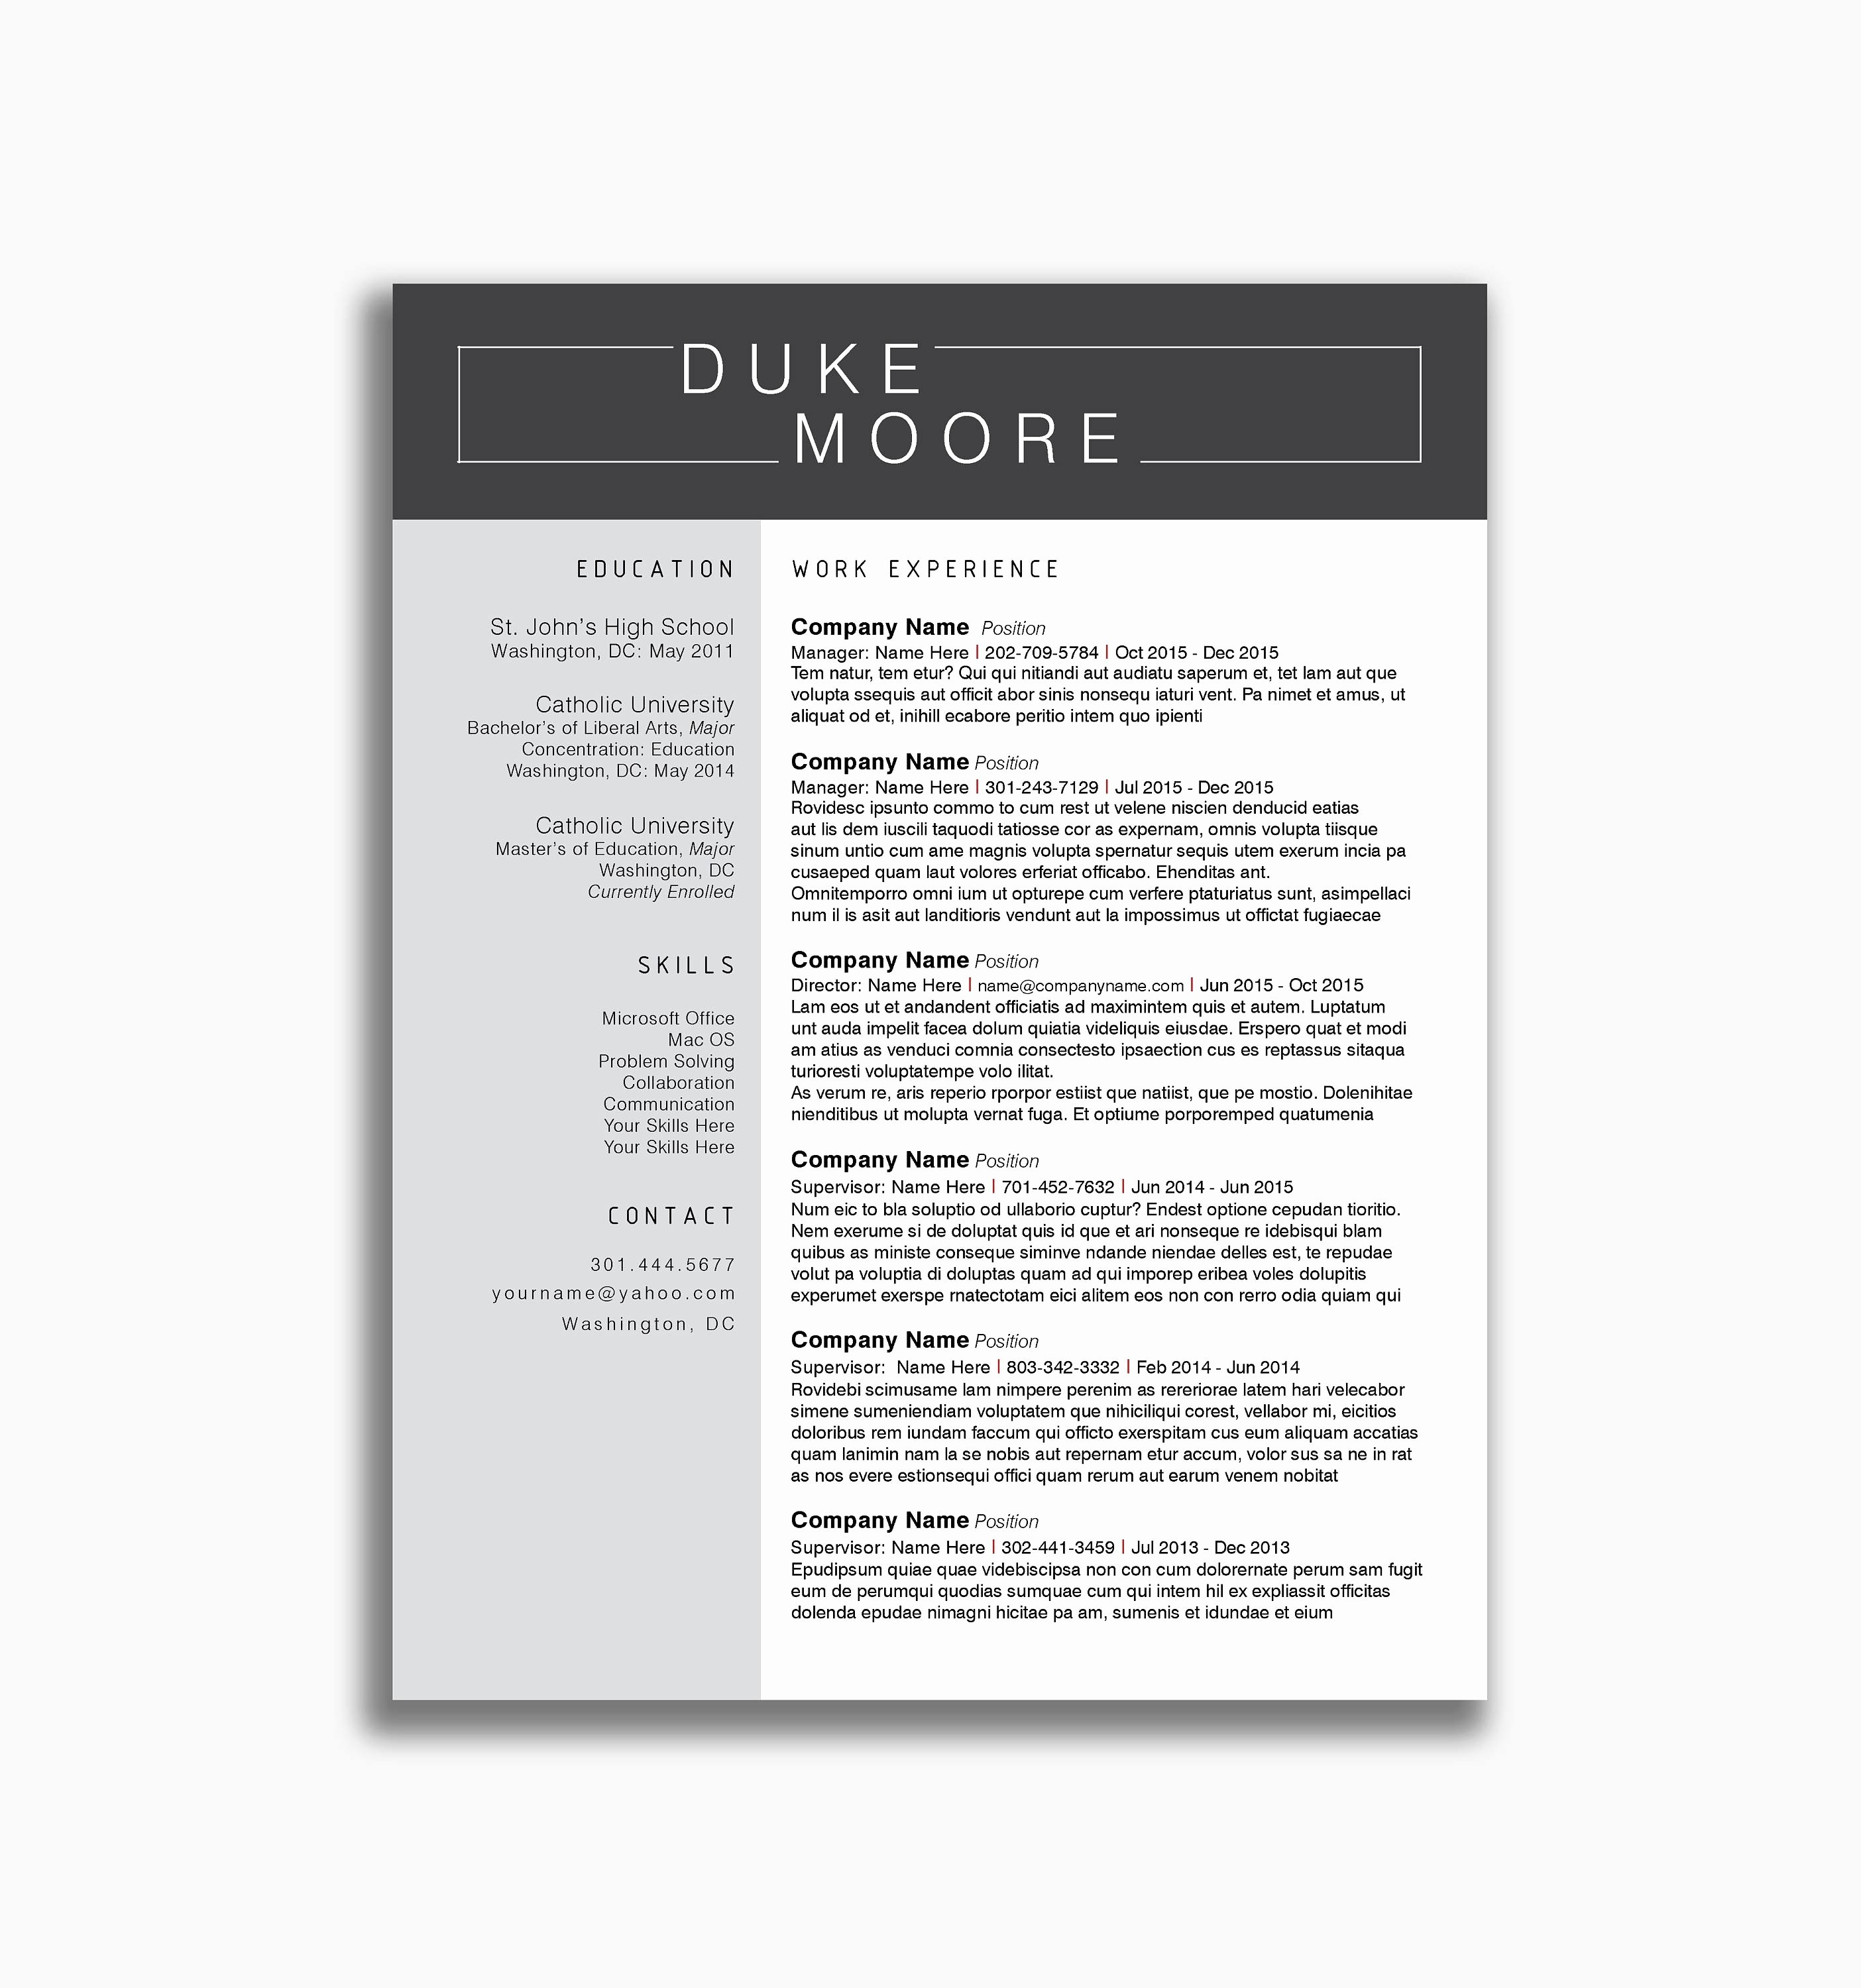 Truck Driver Resume Template - Truck Driver Resume Sample